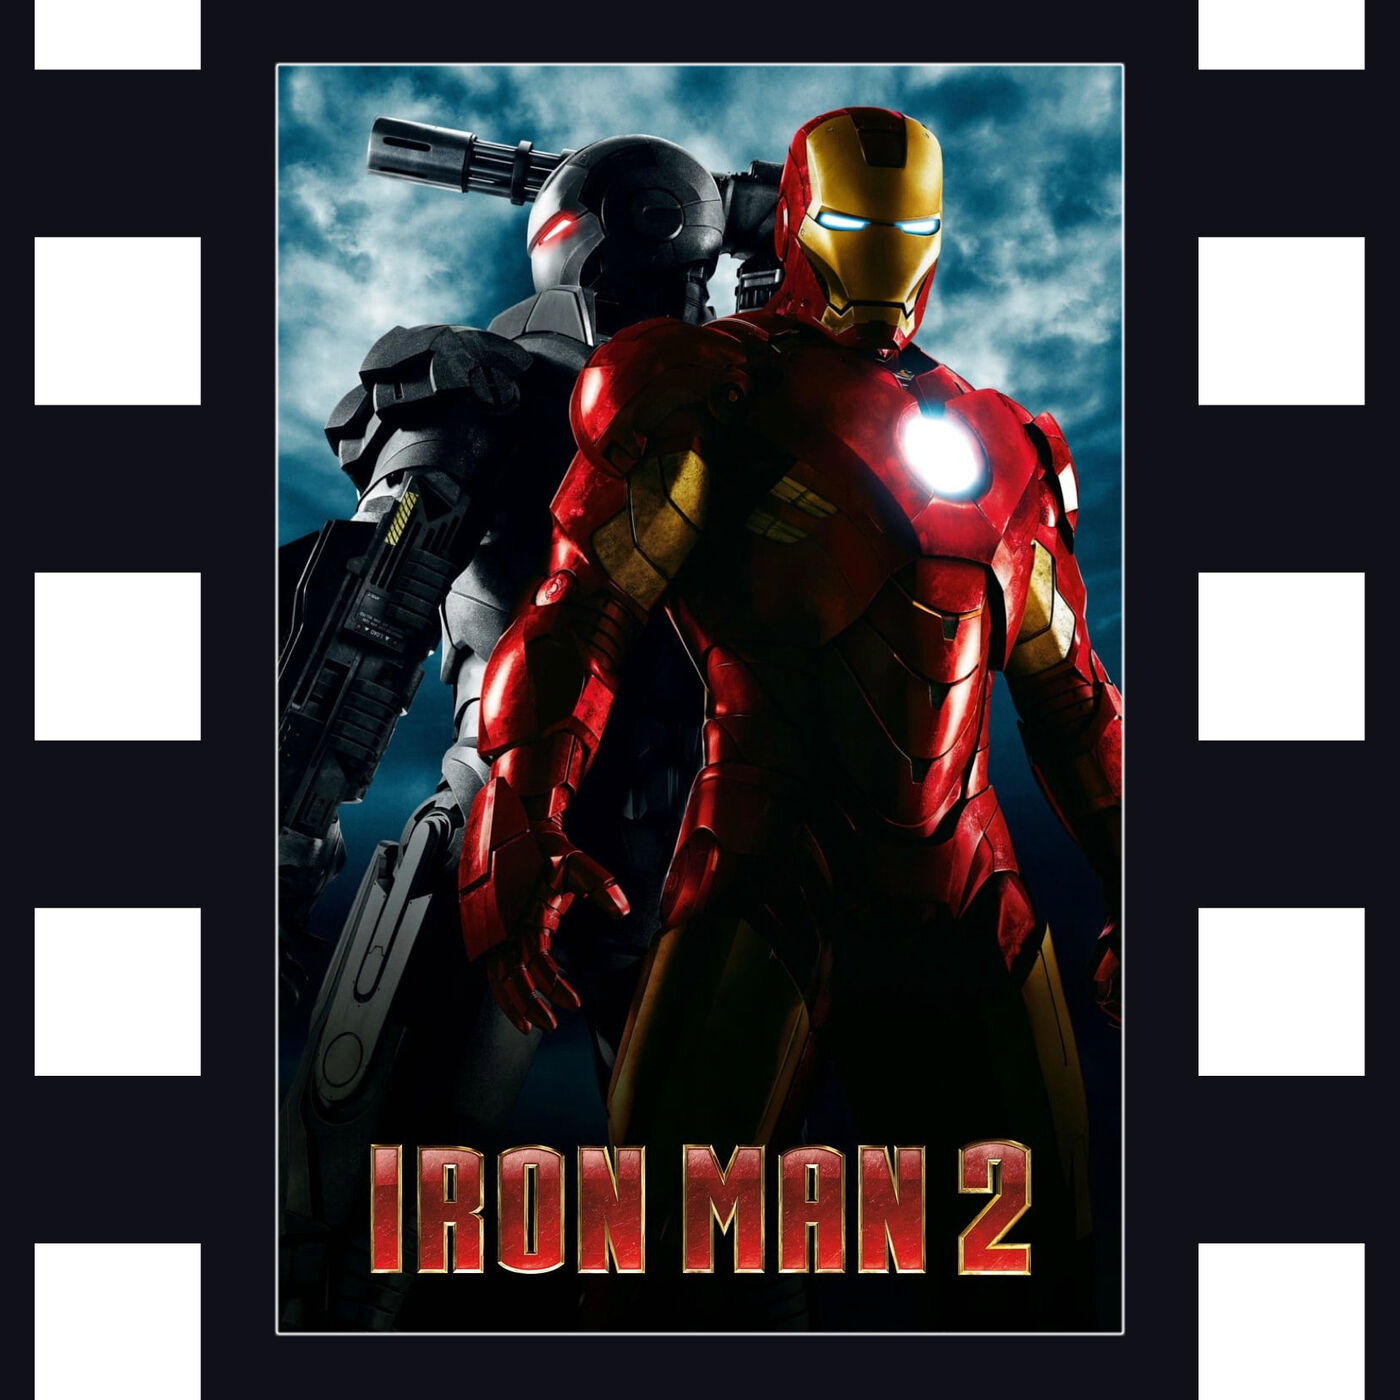 Iron Man 2 - Enjoying Things that Stink with The Polymath Roundtable